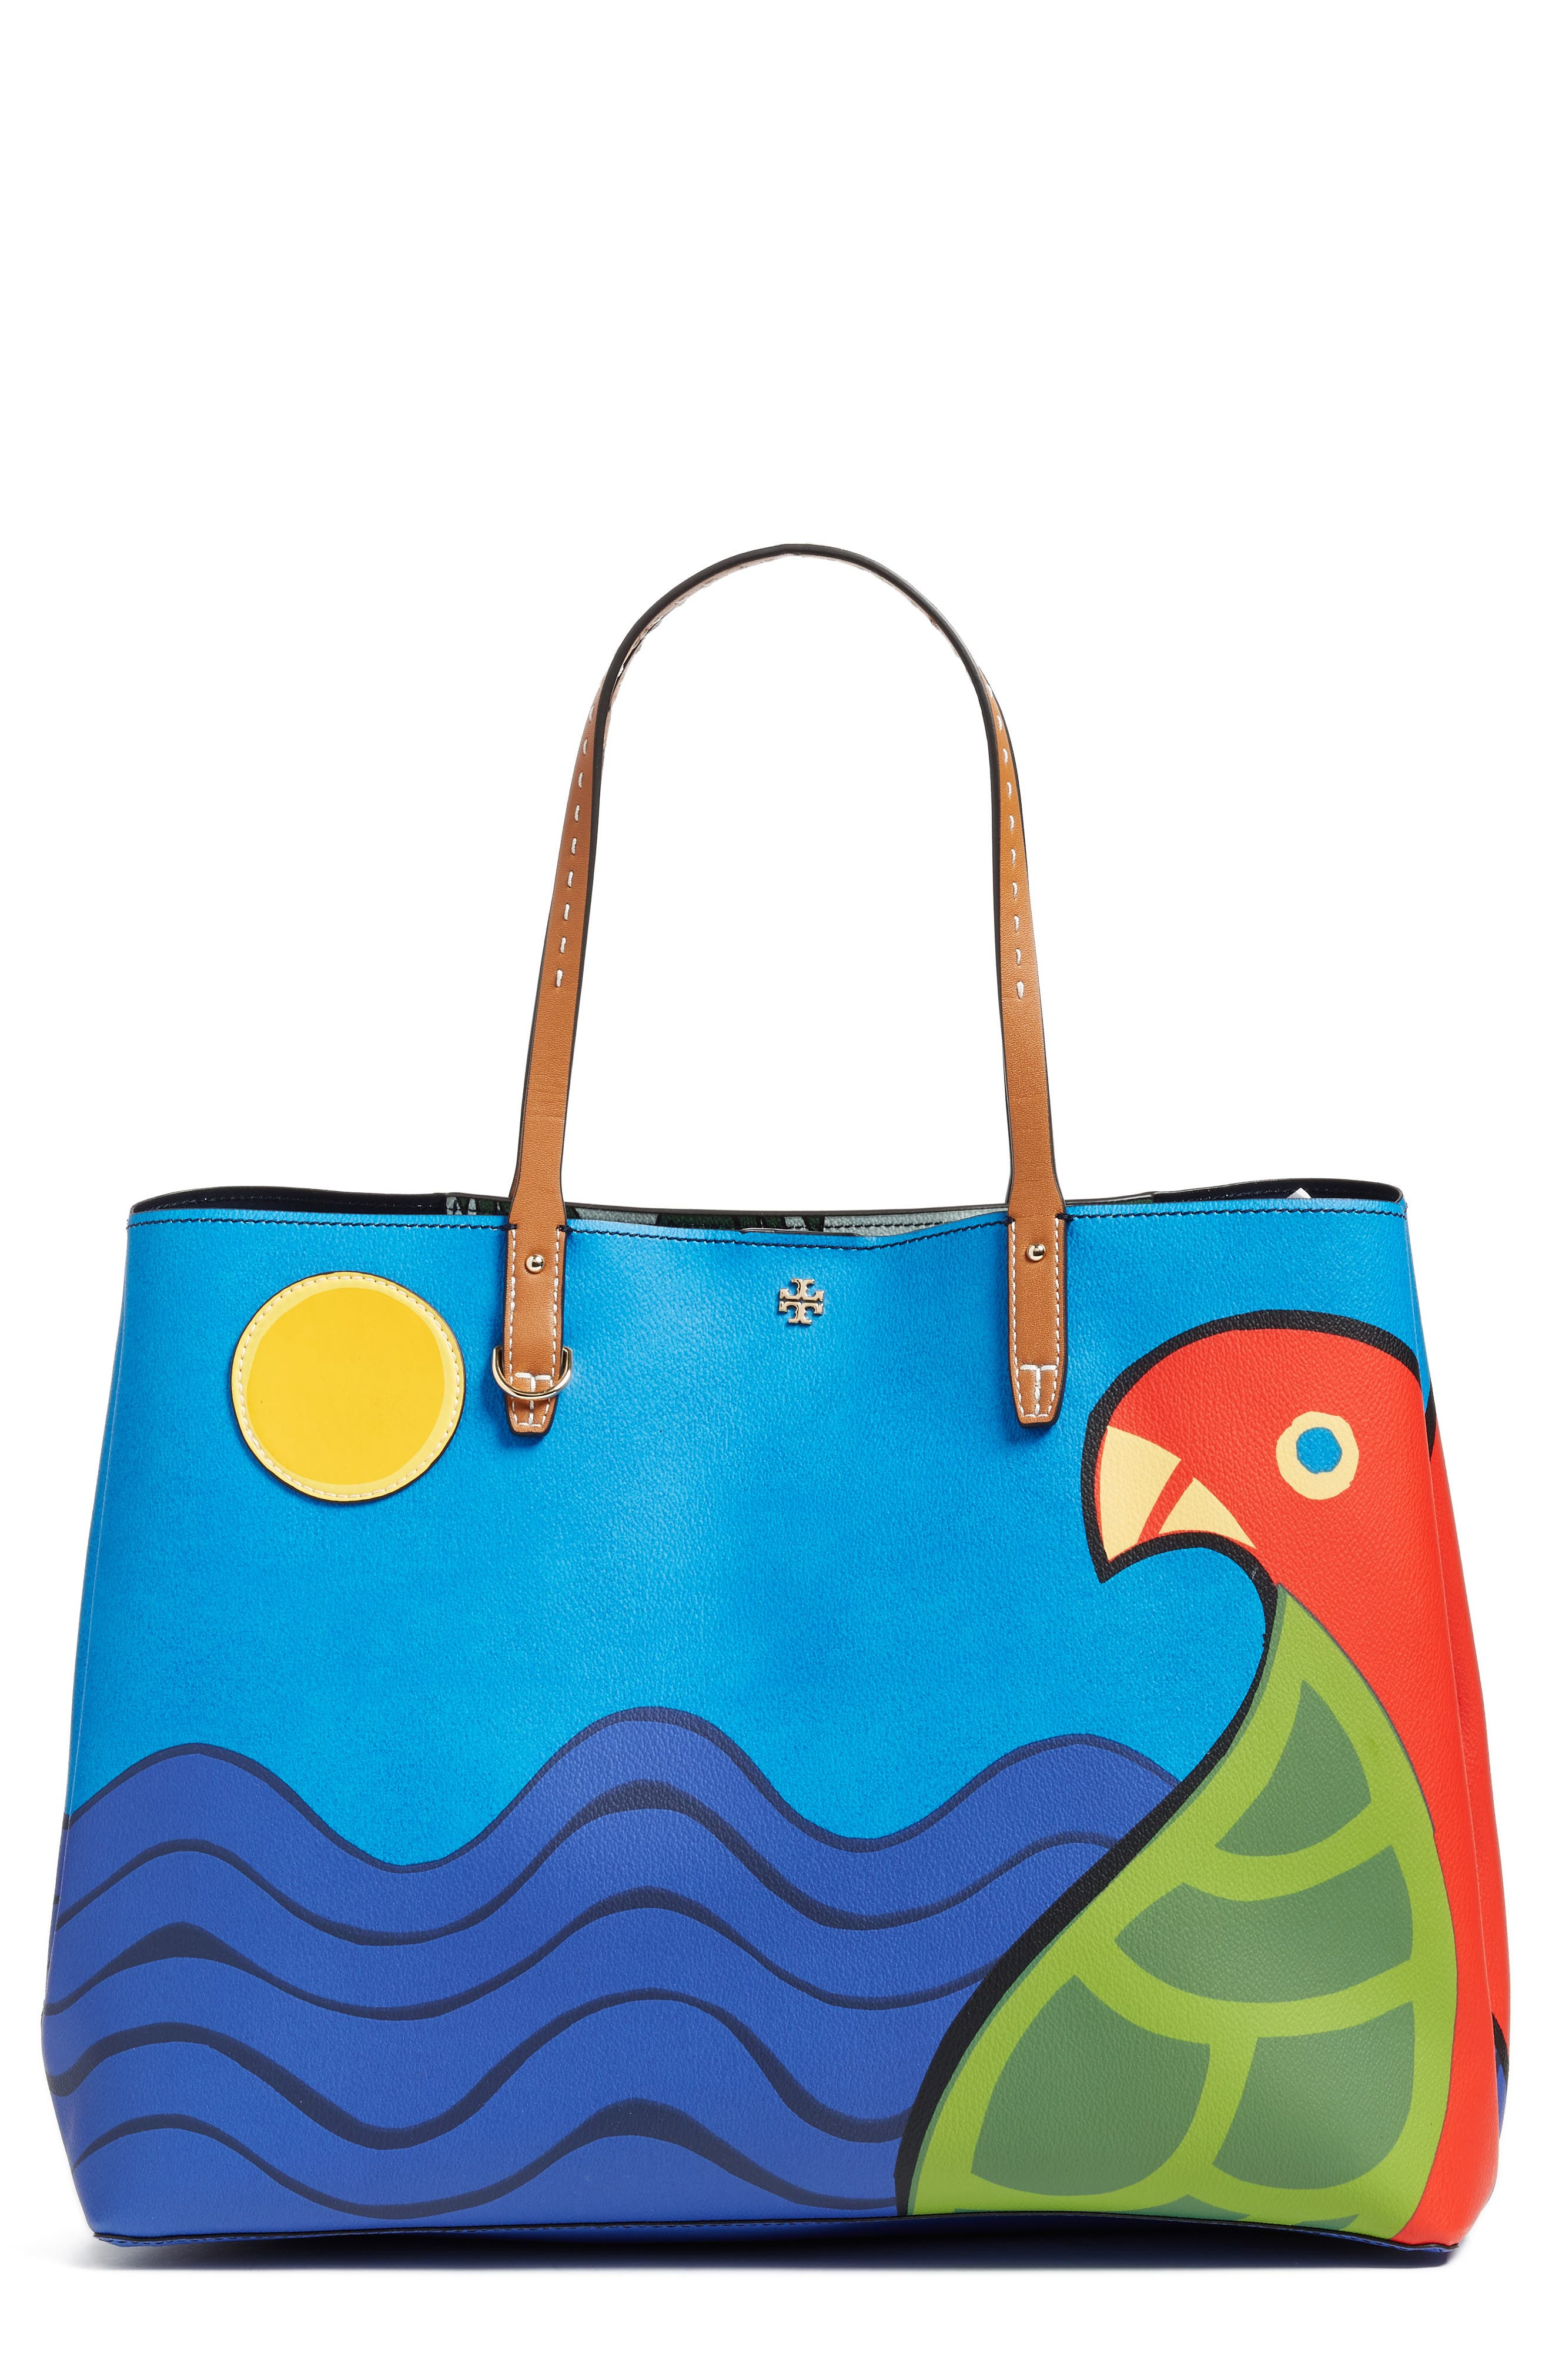 Main Image - Tory Burch Kerrington Parrot Coated Canvas Tote